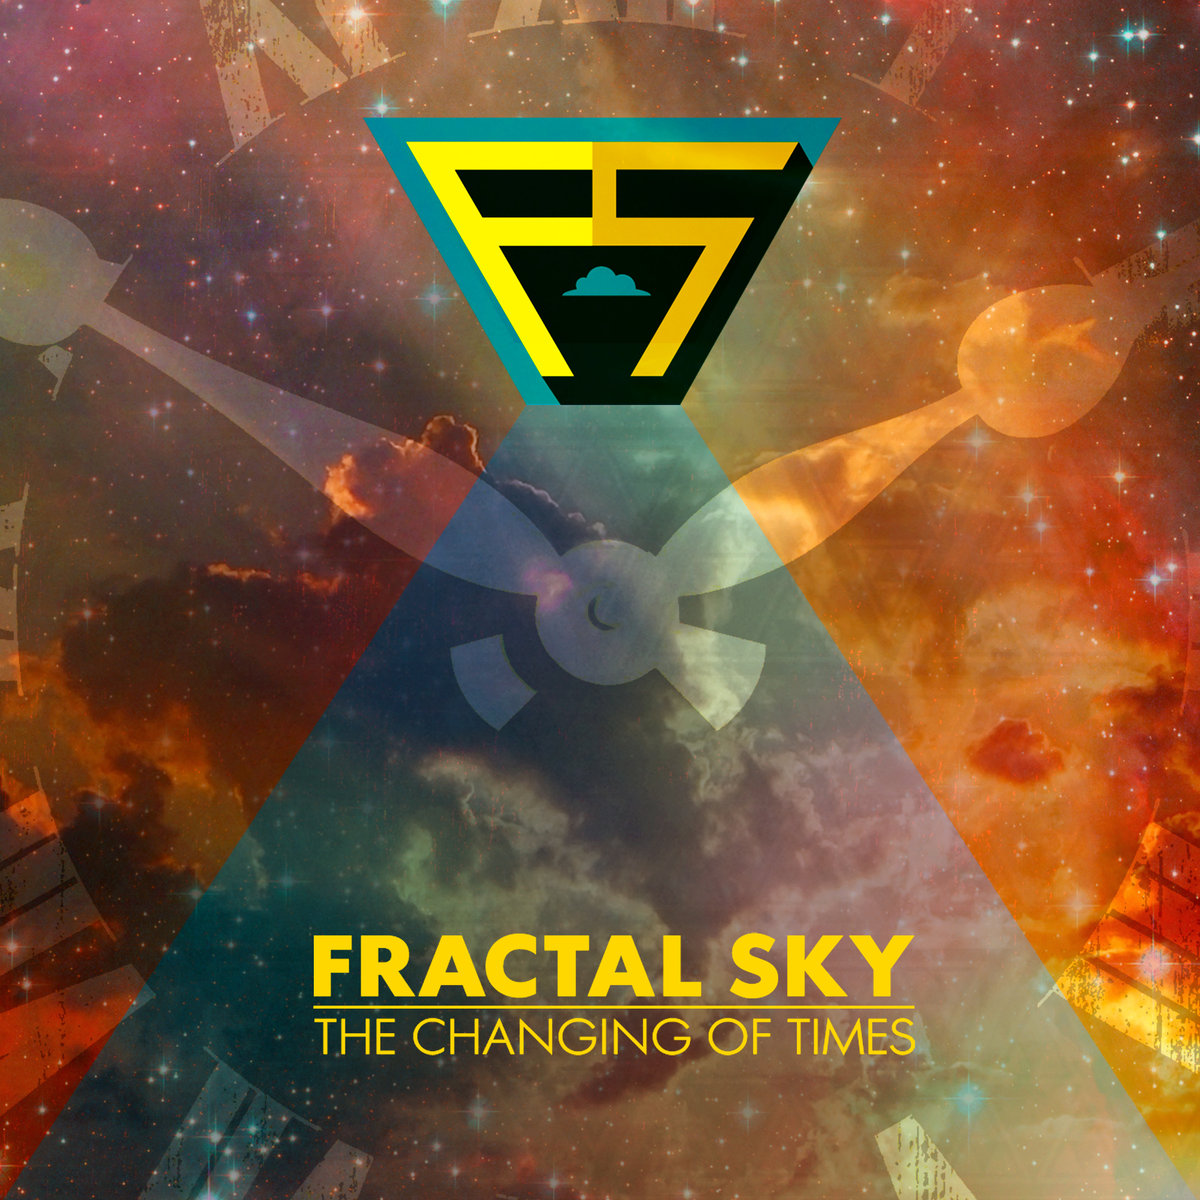 Fractal Sky - TenCityLove @ 'The Changing of Times' album (electro, hip hop)